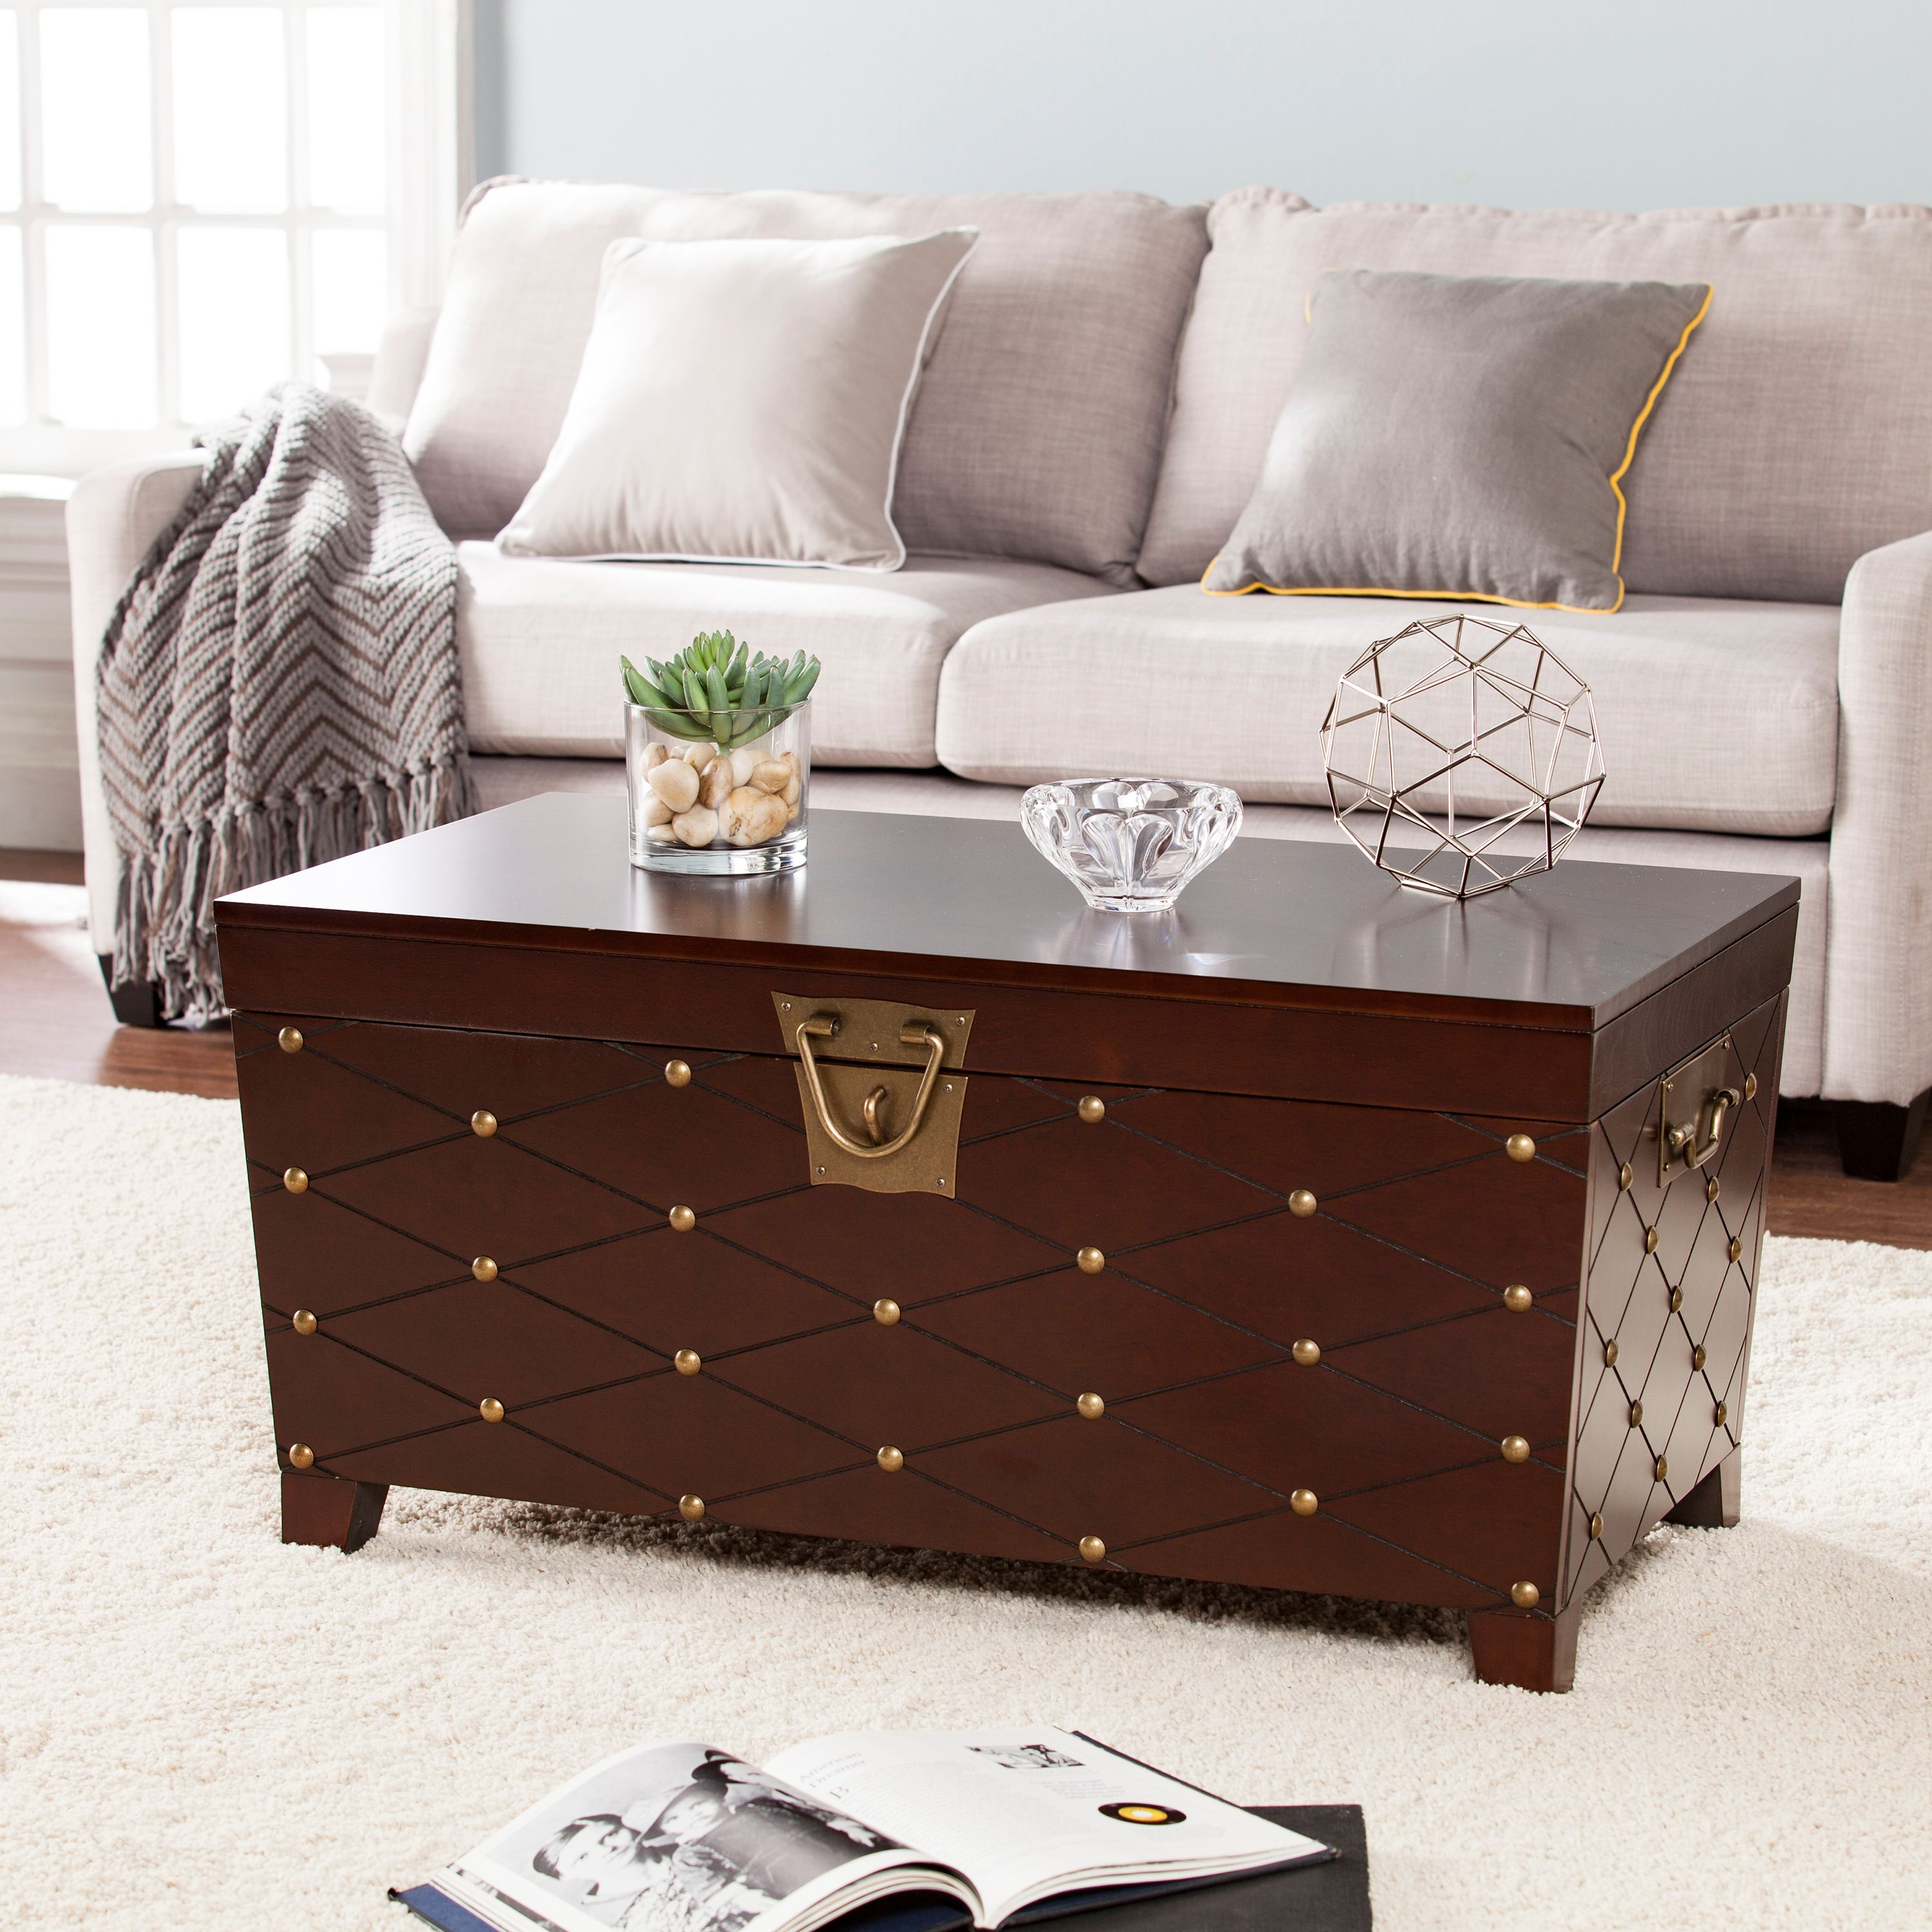 Fabulous Longwood Nailhead Coffee Table Trunk Espresso Walmart Com Onthecornerstone Fun Painted Chair Ideas Images Onthecornerstoneorg